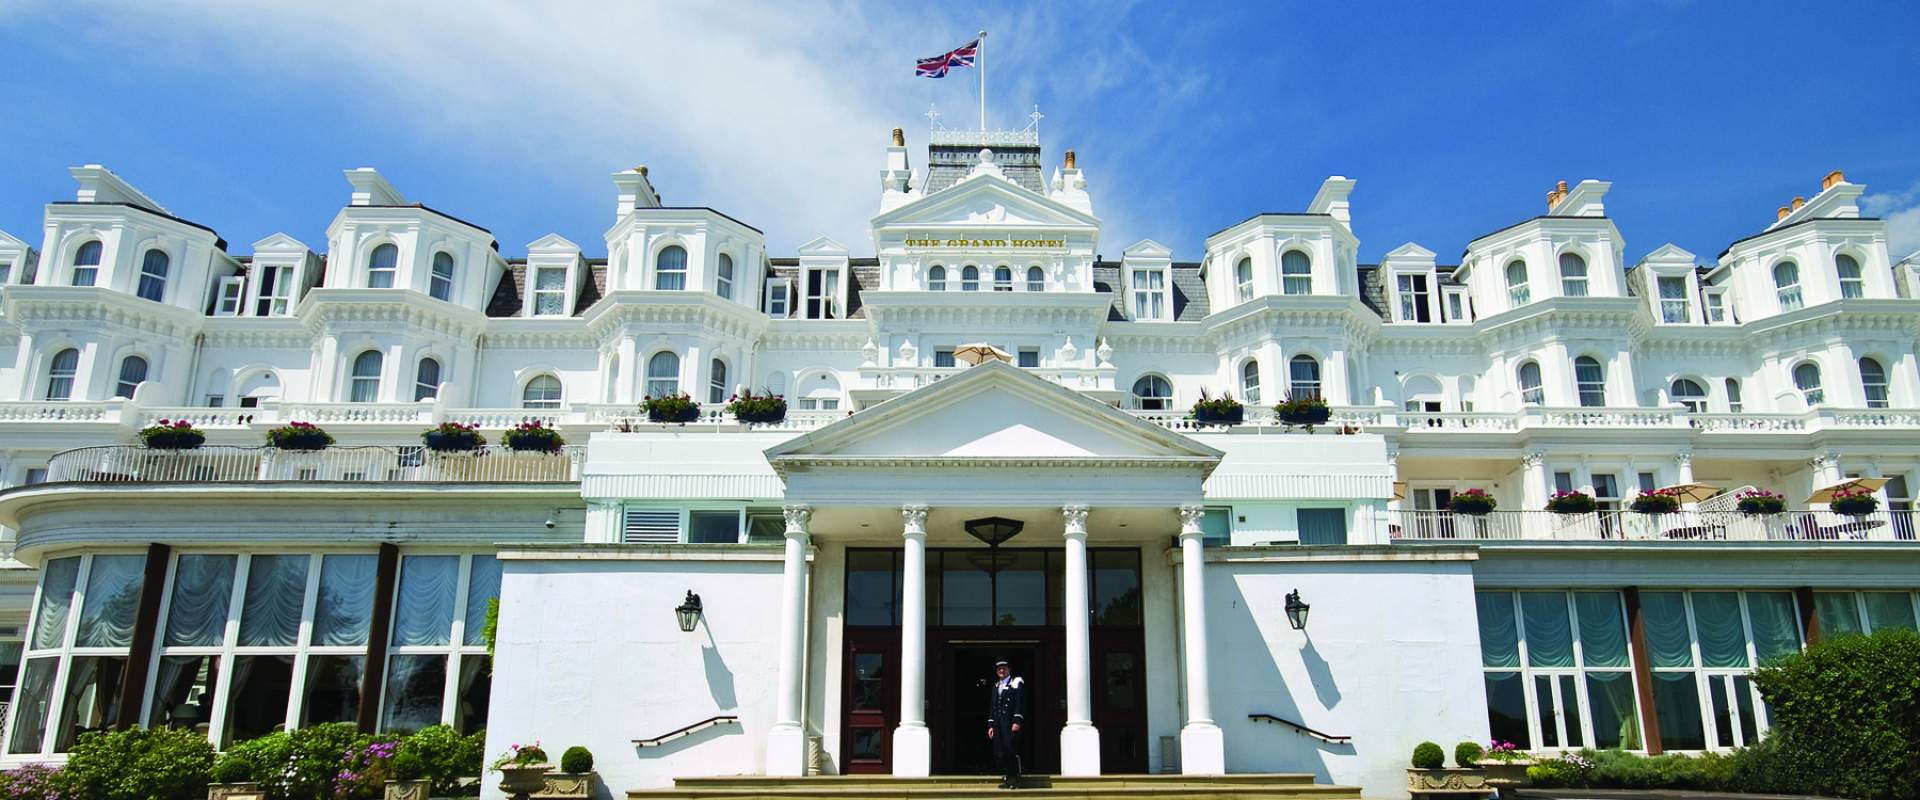 Luxury Hotels in Eastbourne, East Sussex - The Grand Hotel